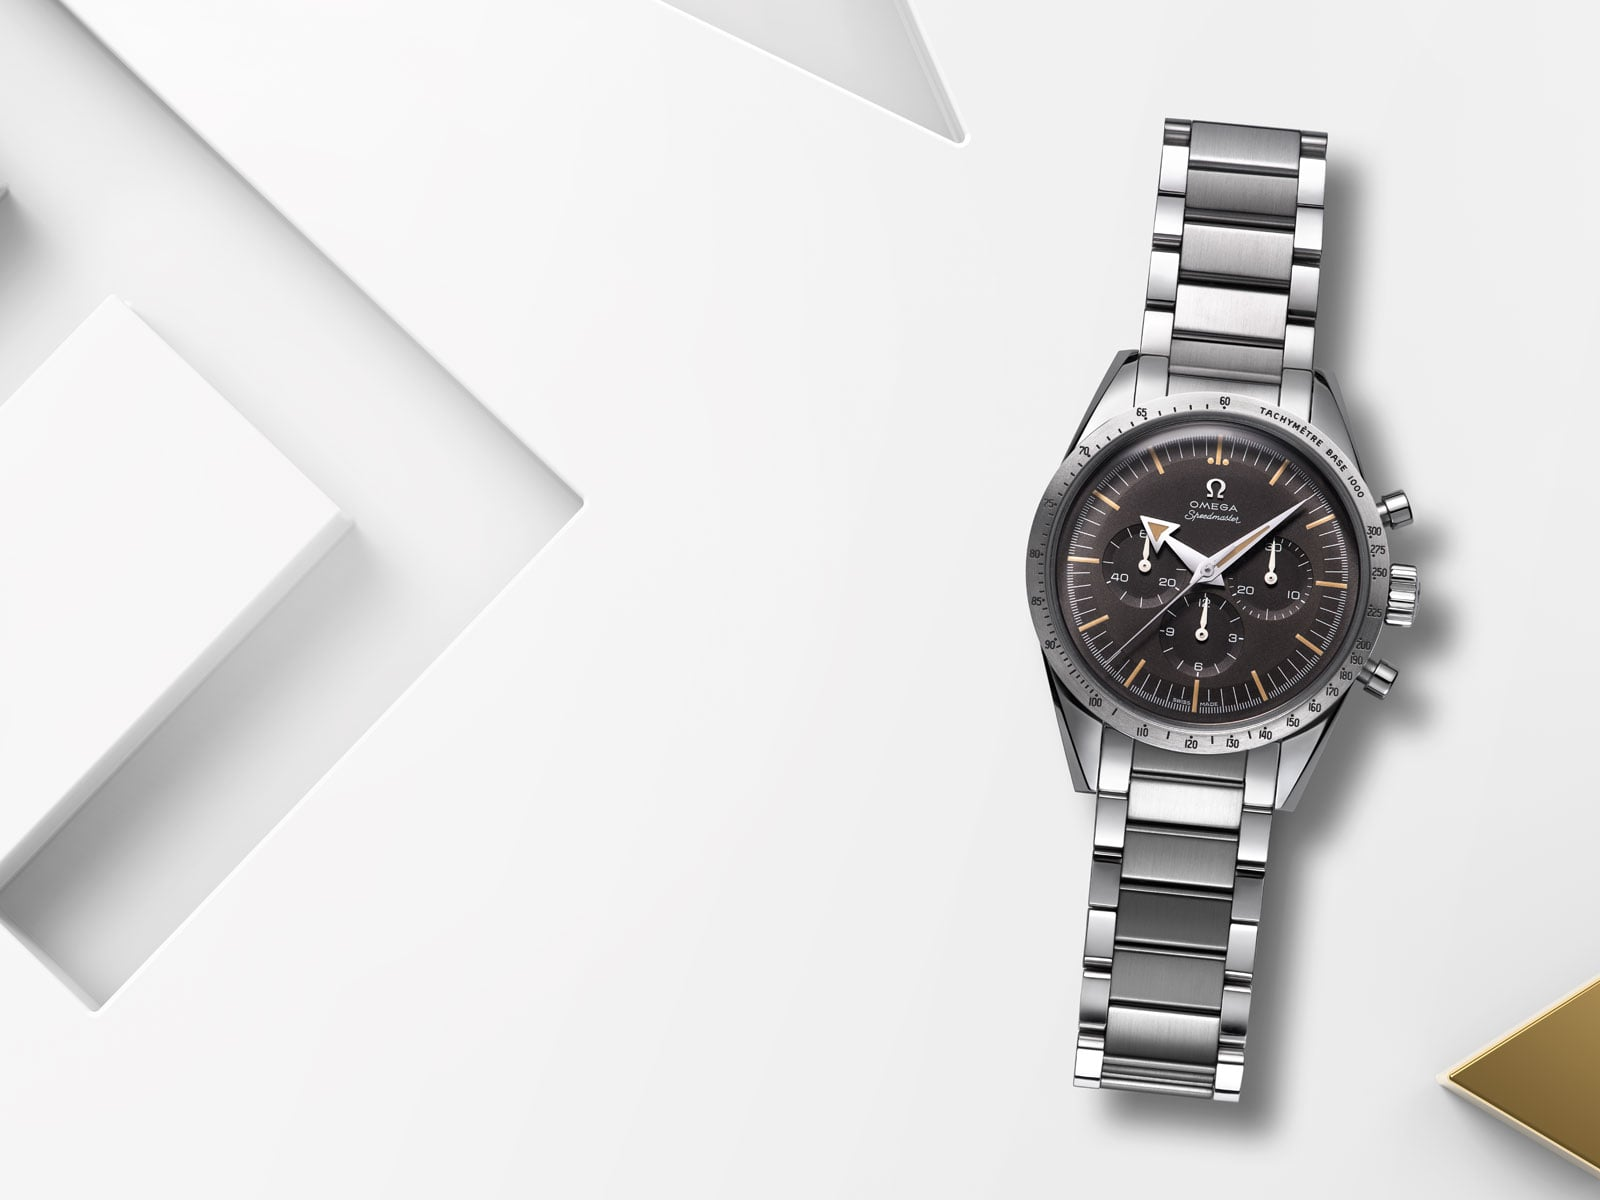 THE SPEEDMASTER 60TH ANNIVERSARY LIMITED EDITION